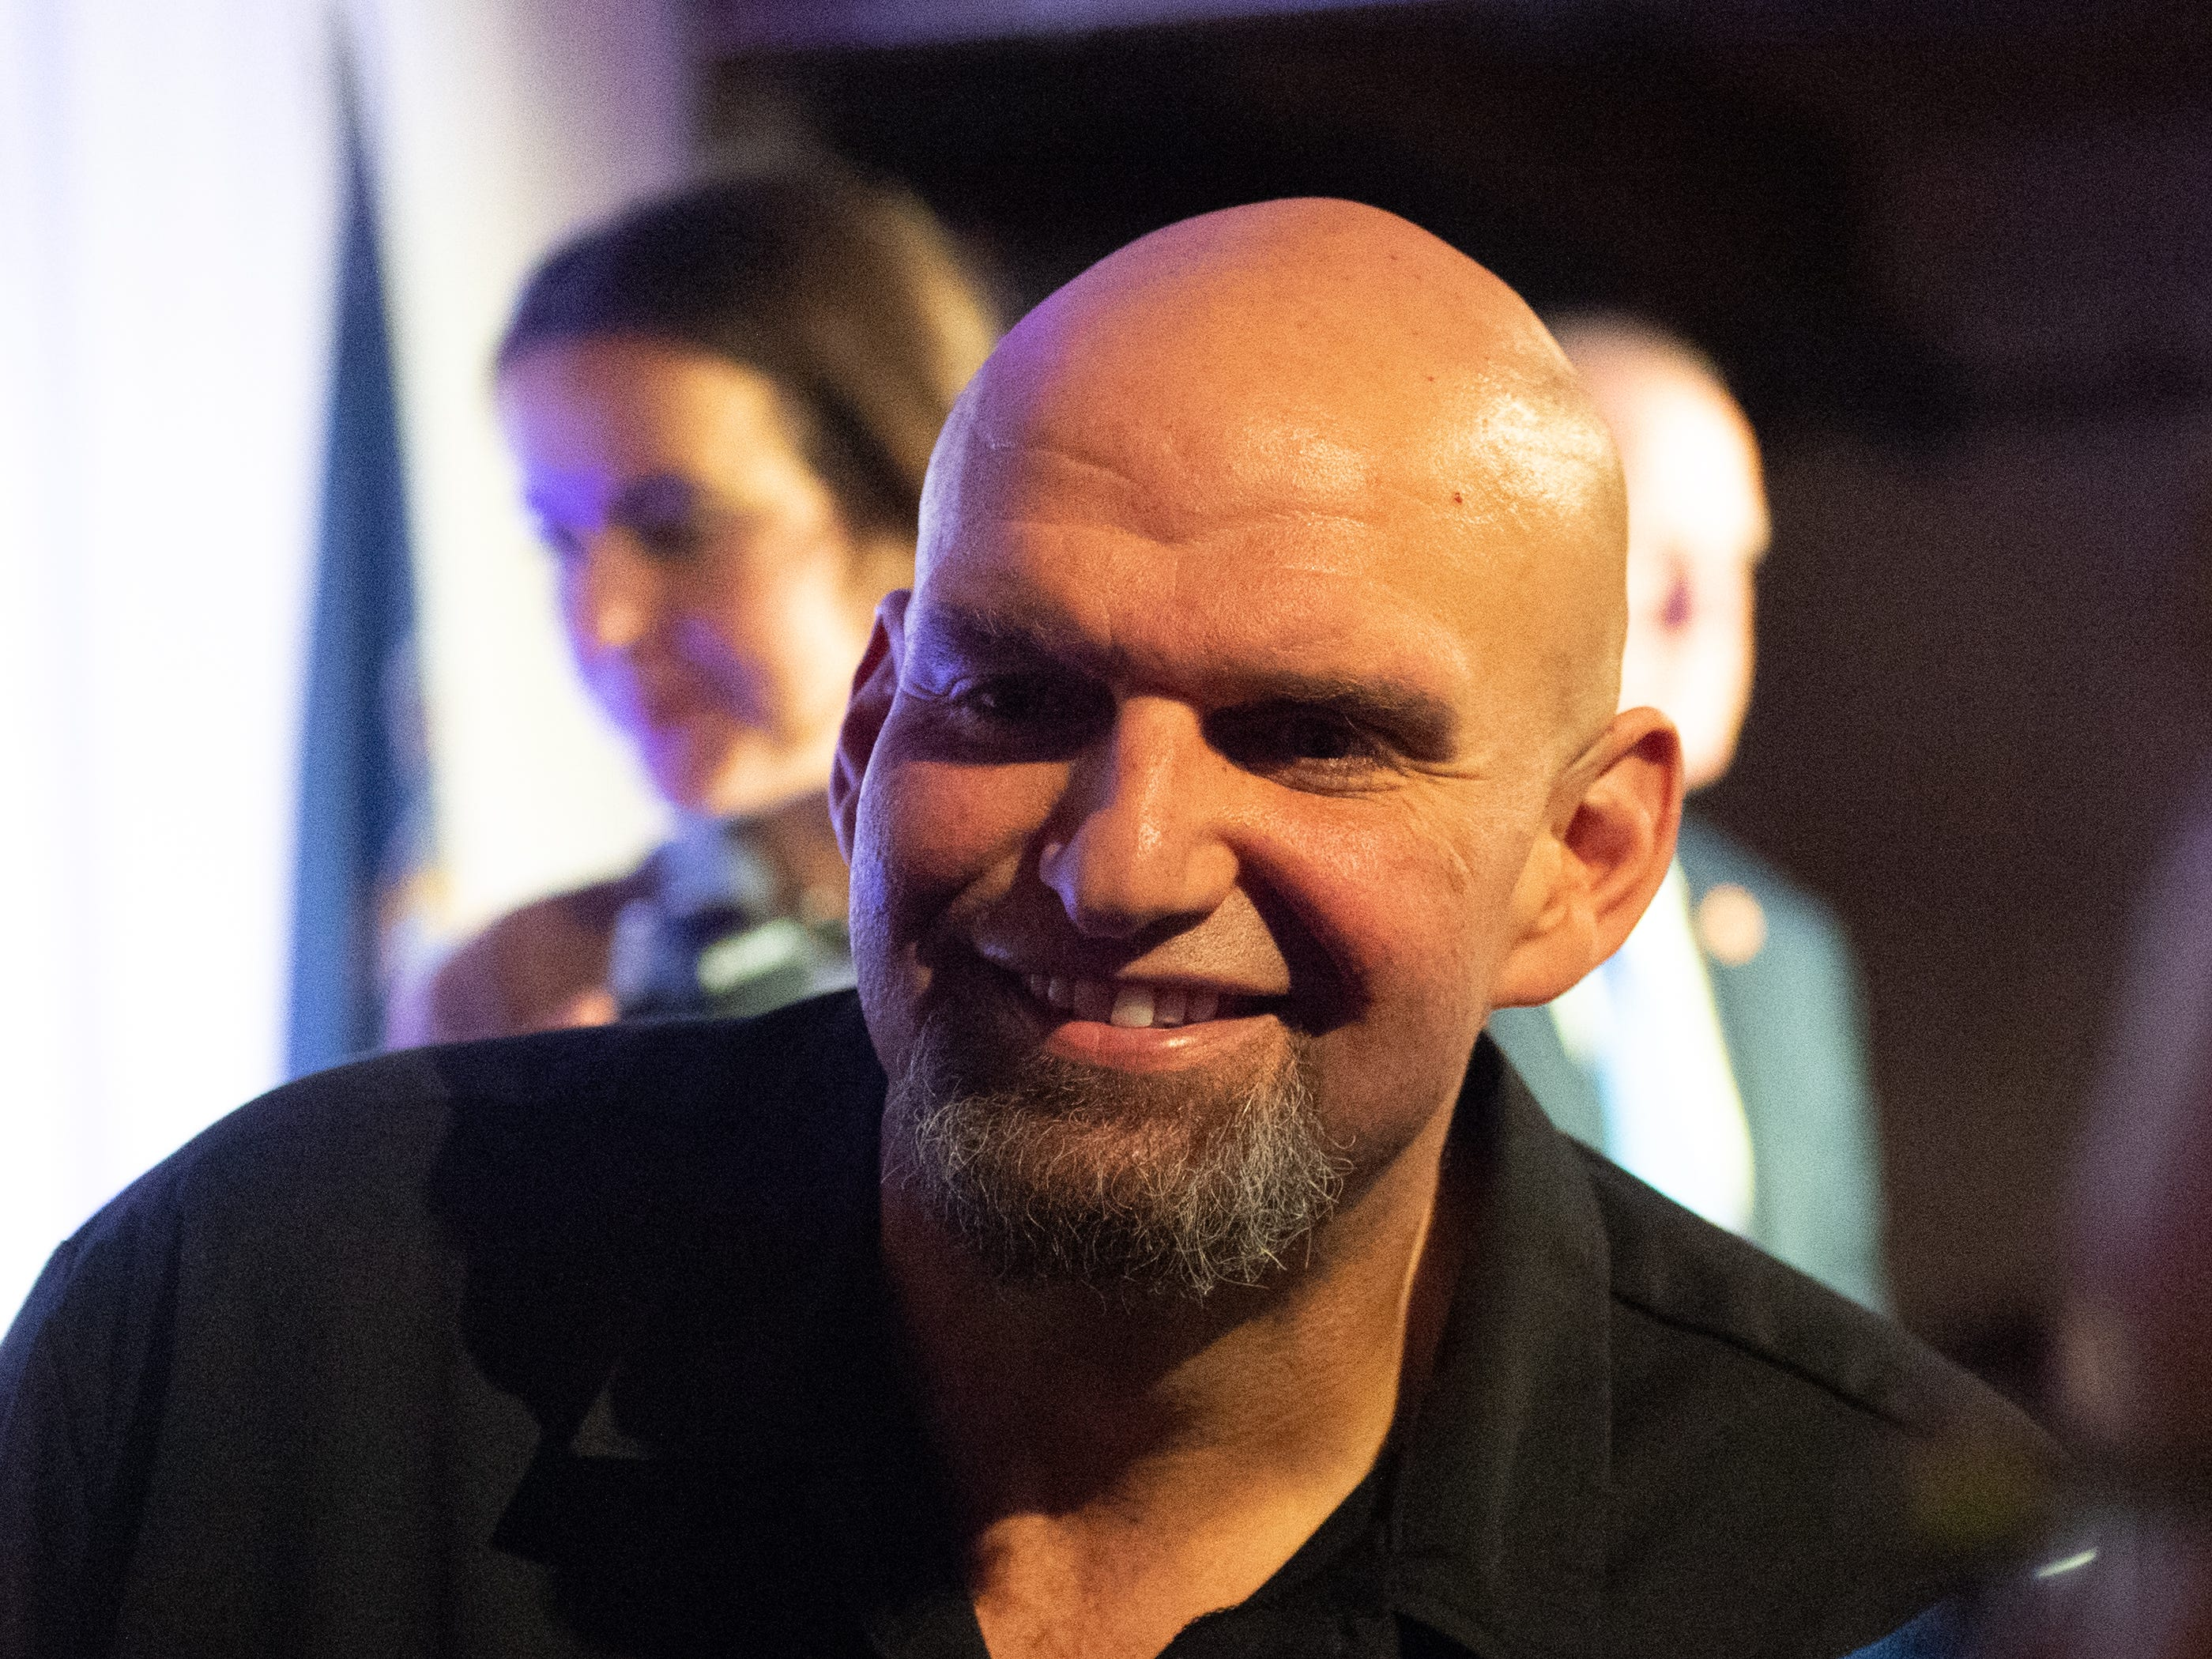 Lieutenant Governor-Elect John Fetterman is all smiles after delivering his victory speech at the Election Night Party, Tuesday, November 6, 2018. Tom Wolf was re-elected as Governor of Pennsylvania after defeating Scott Wagner.